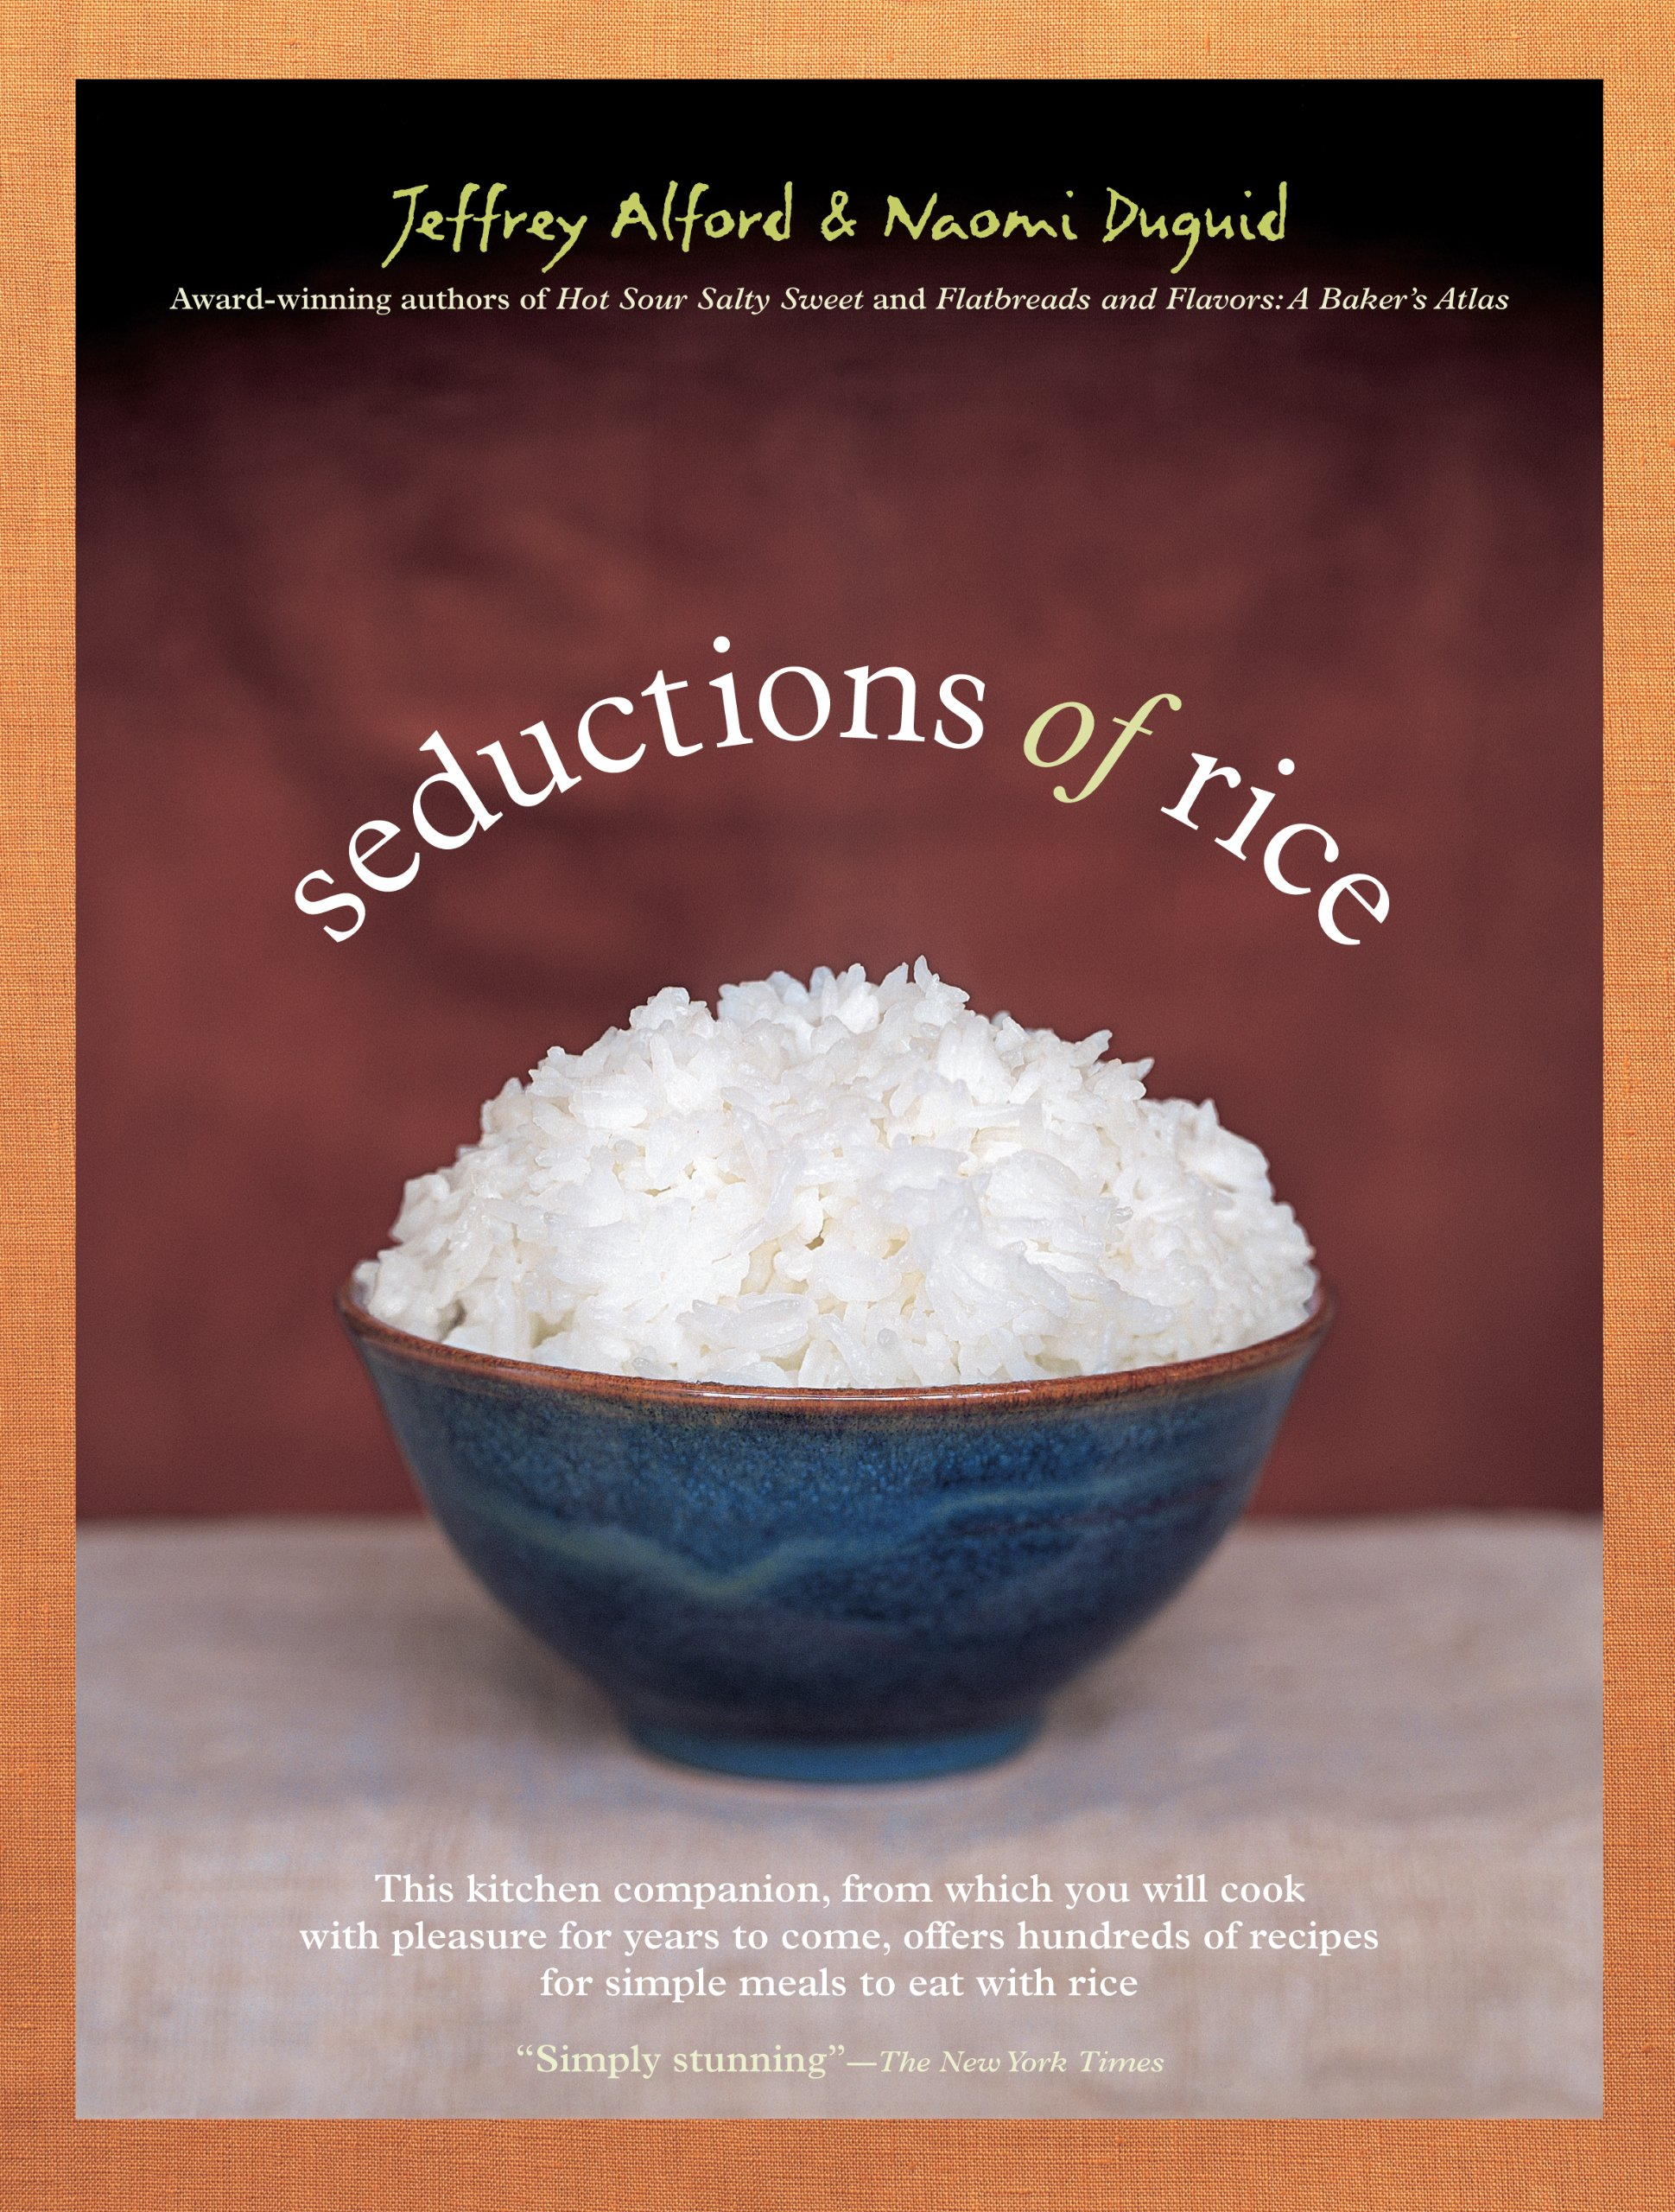 rice essay essay on important food crops of words seductions of  seductions of rice jeffrey alford naomi duguid seductions of rice jeffrey alford naomi duguid 9781579652340 com essay